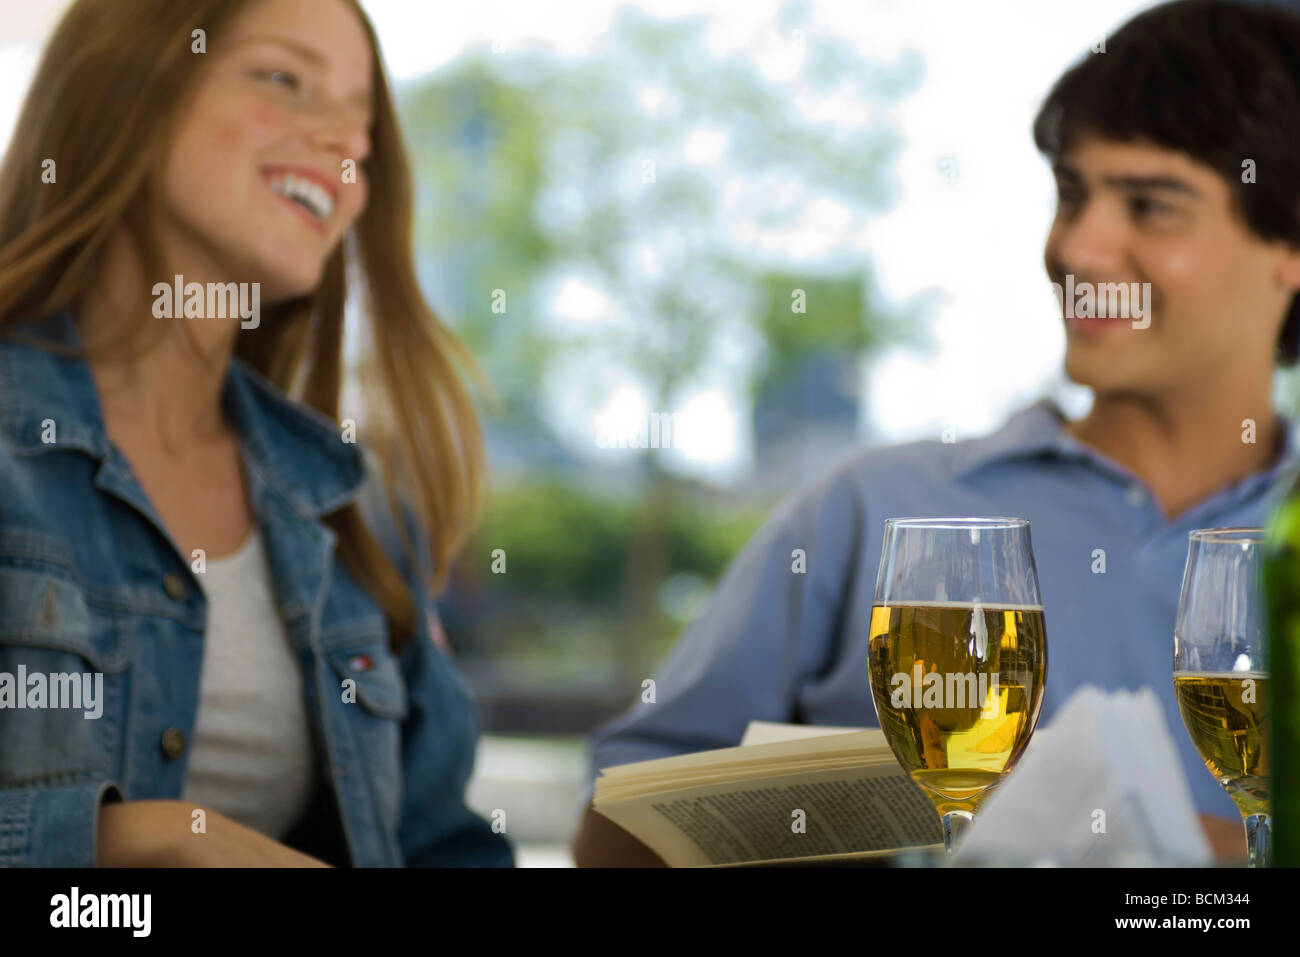 Friends laughing in outdoor cafe, glasses of beer in foreground - Stock Image